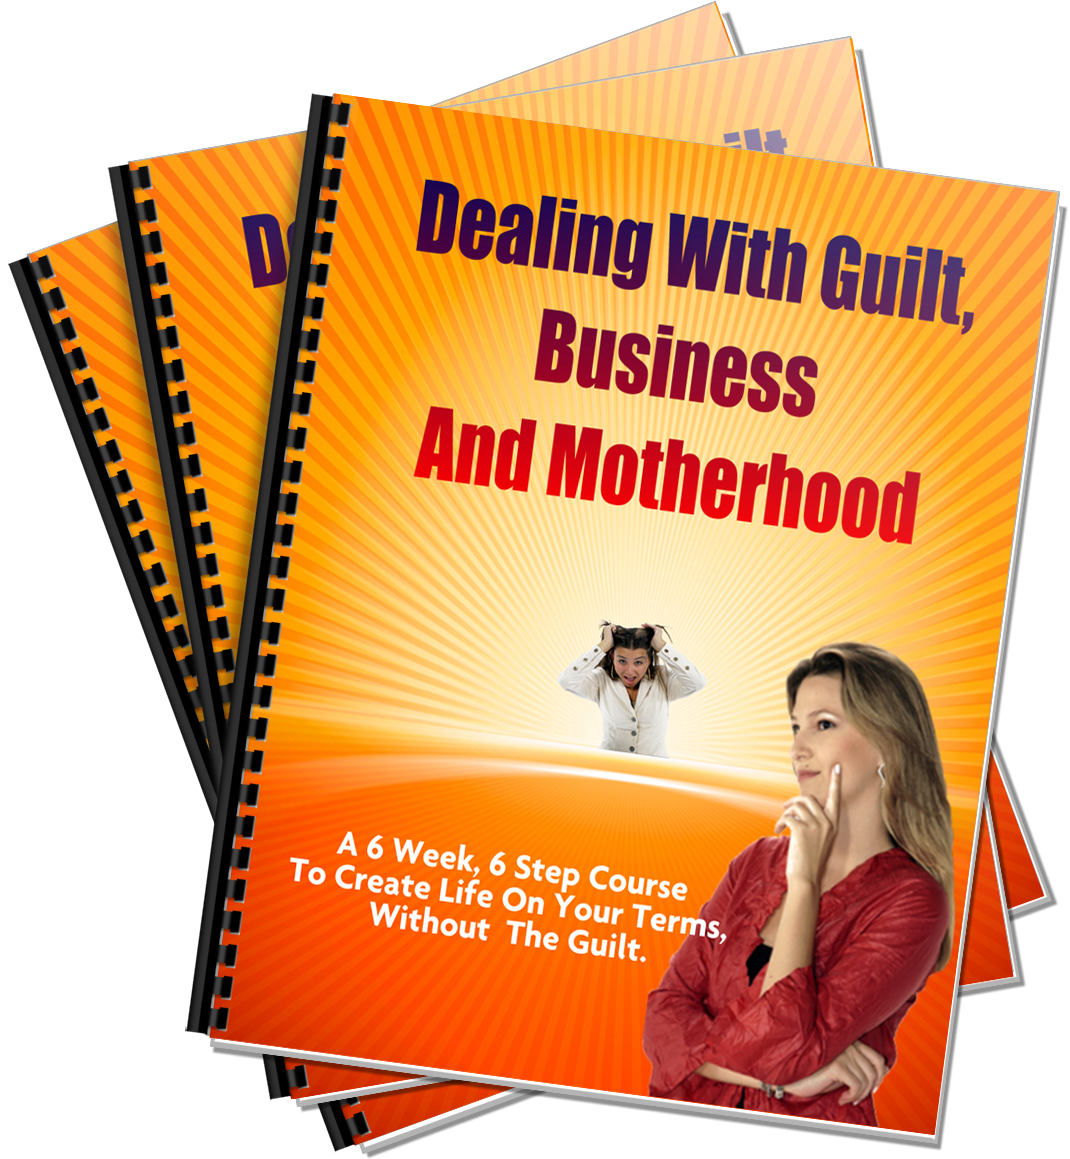 Dealing with Guilt, Business & Motherhood